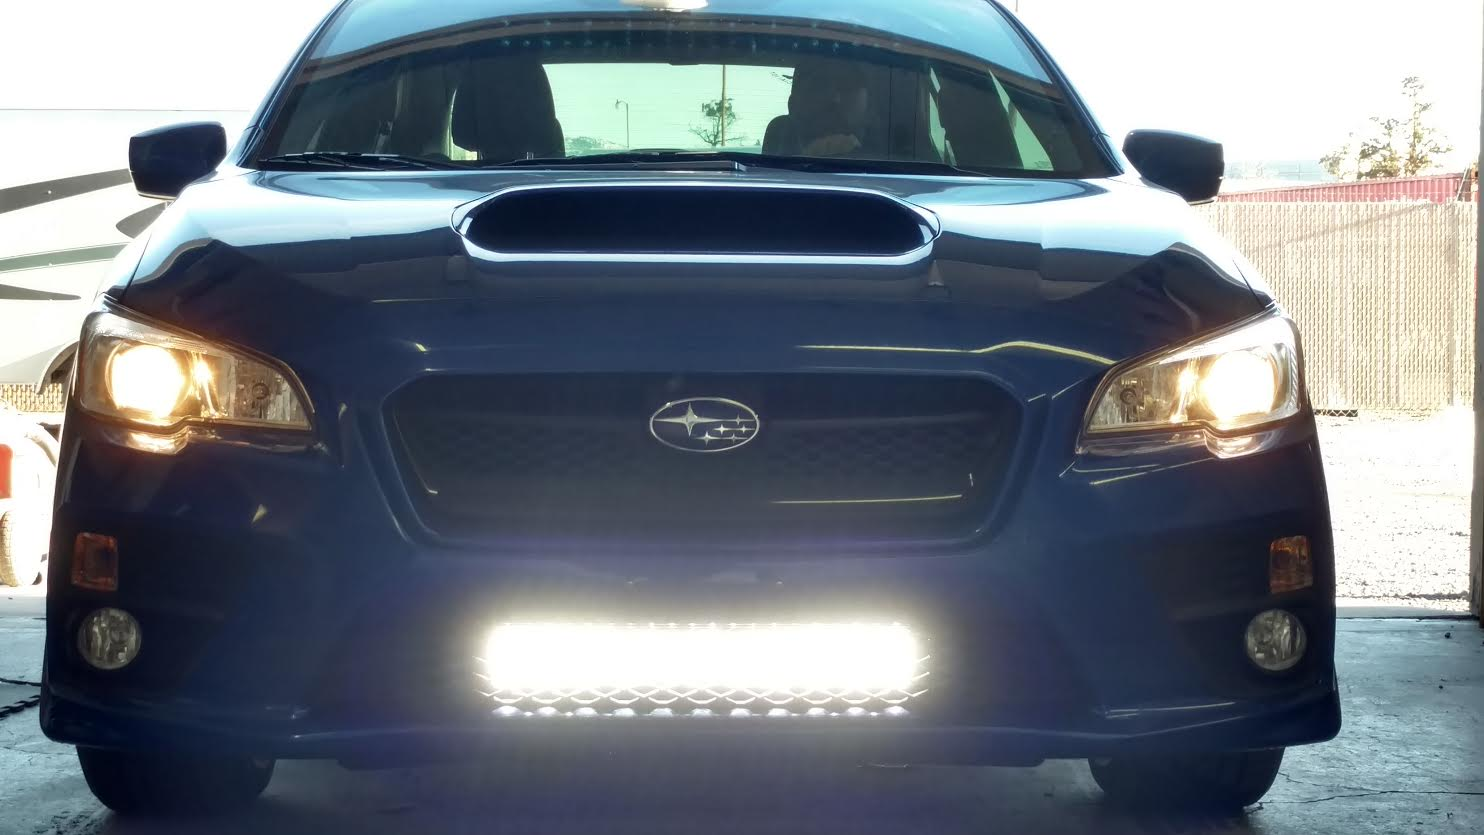 sti-bumper-light-on.jpg